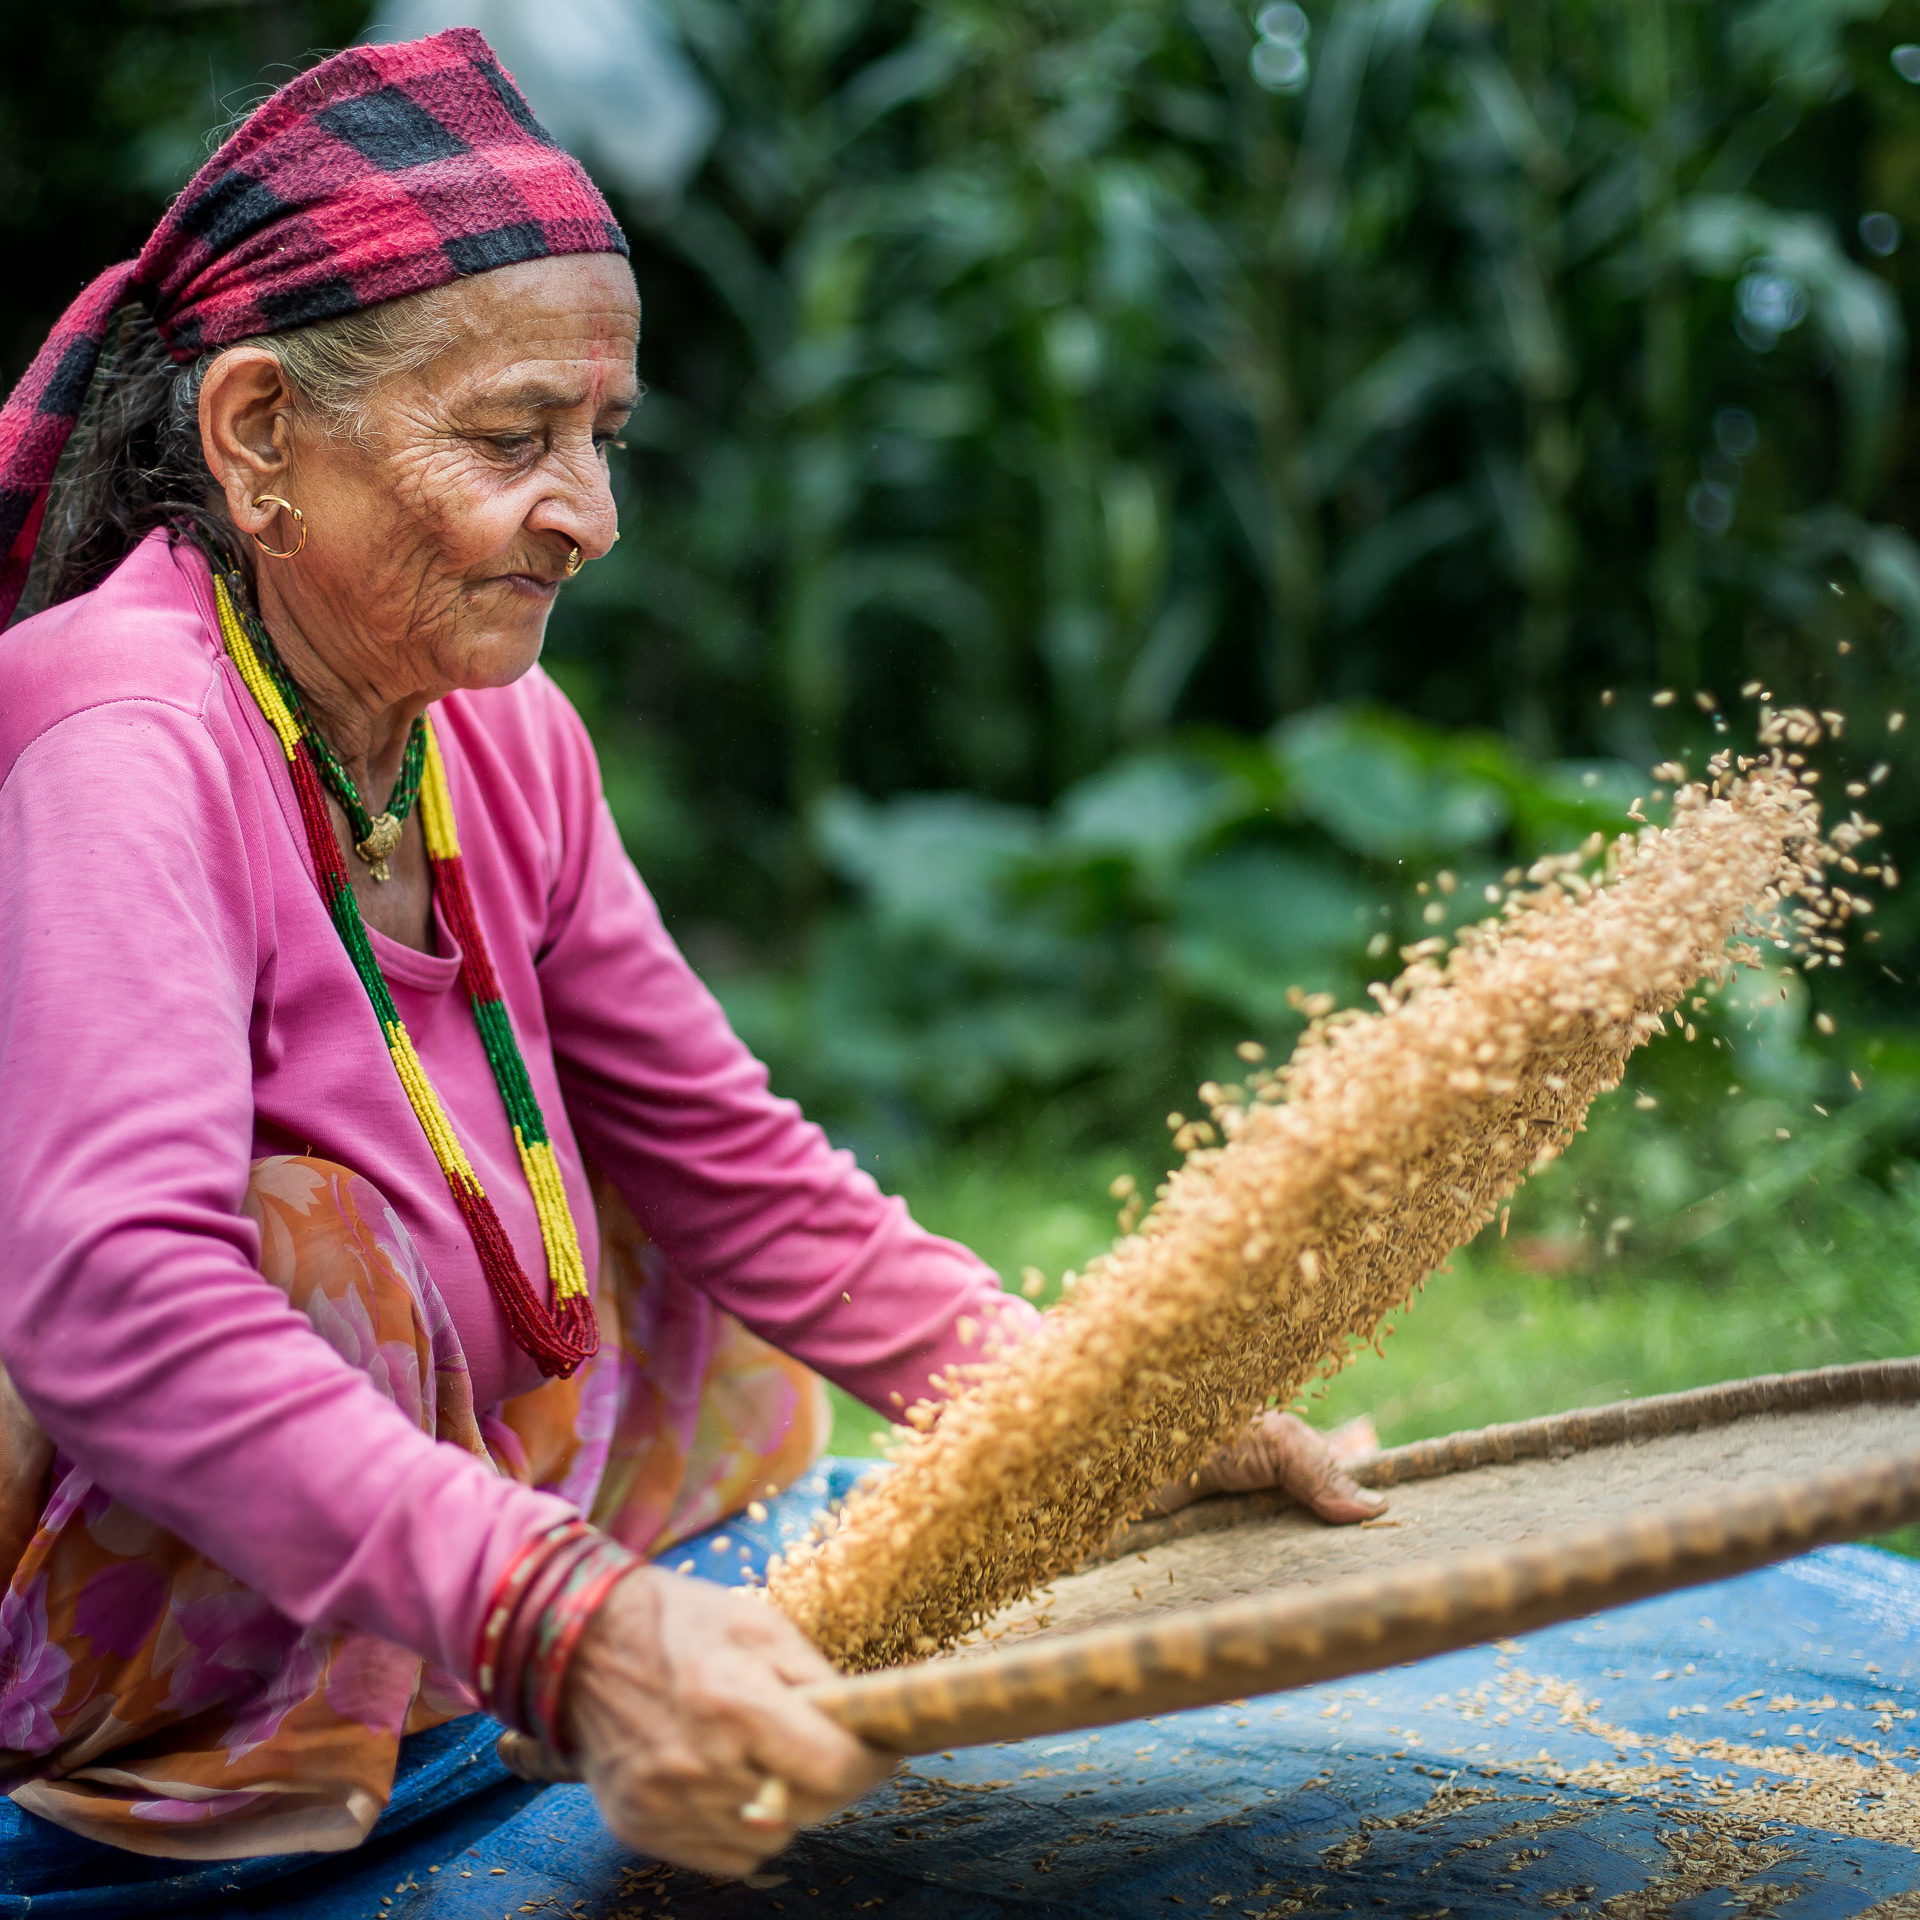 Woman cleaning grain by using a nanglo to toss it, separating grit and soil from the grain.